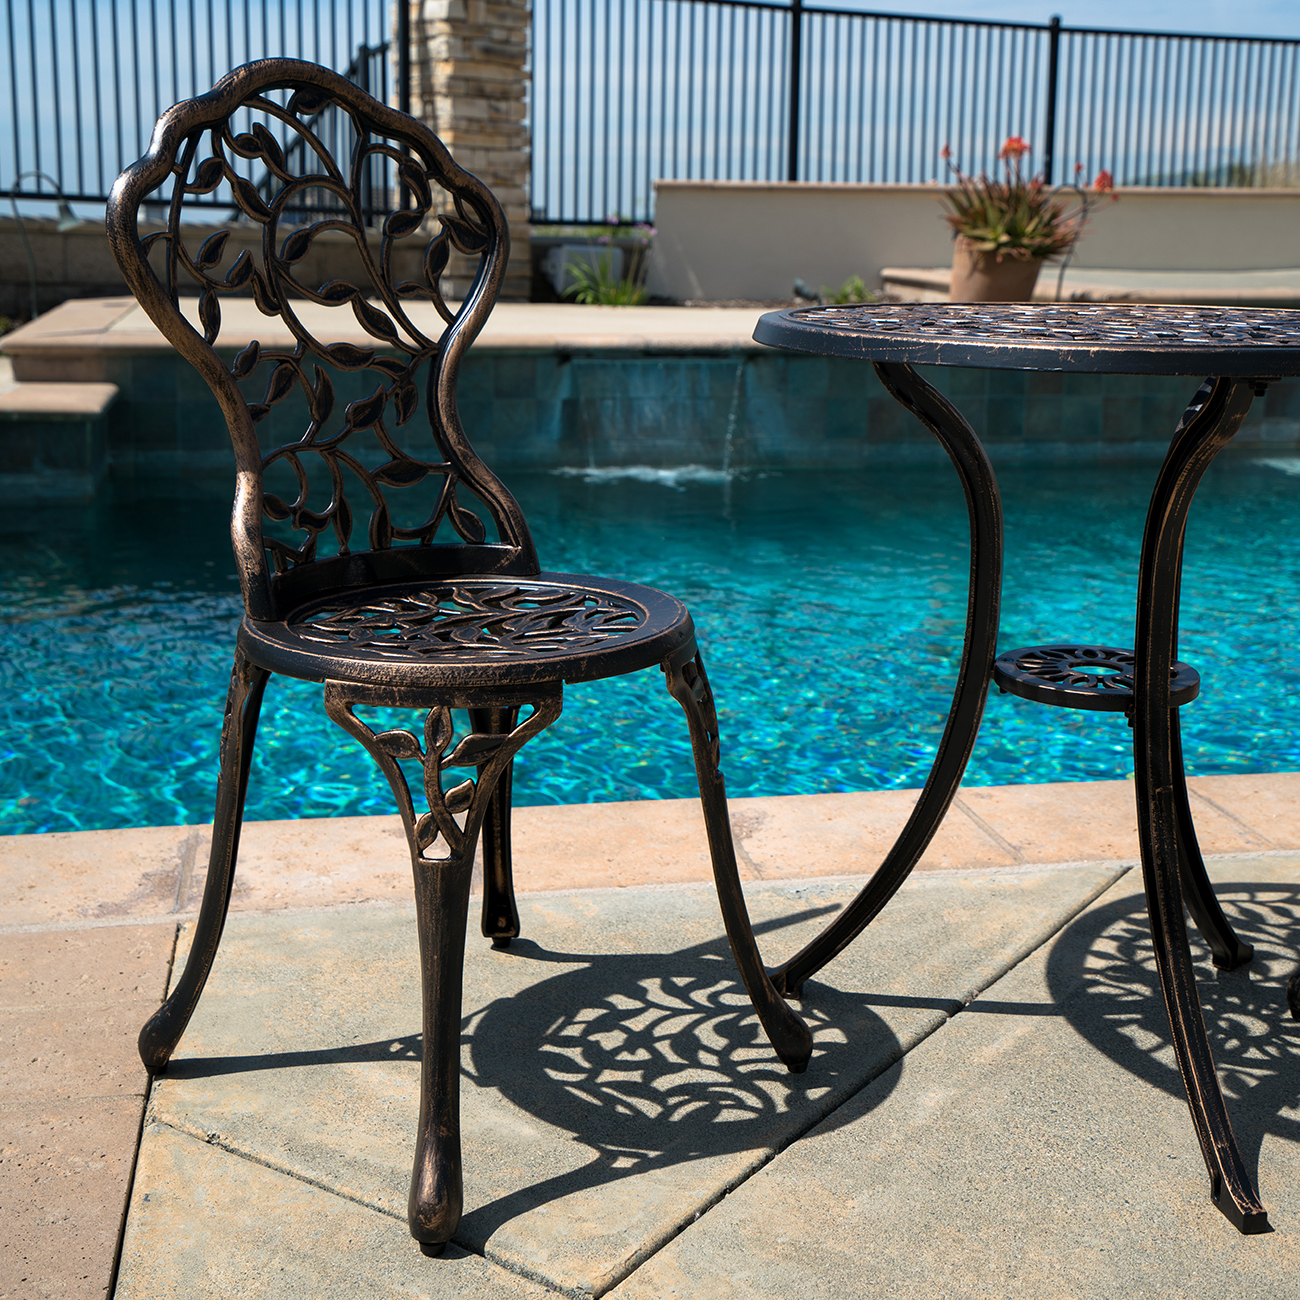 outside table and chairs for 2 lawn chair usa promo code 3pc bistro set patio ivory furniture balcony